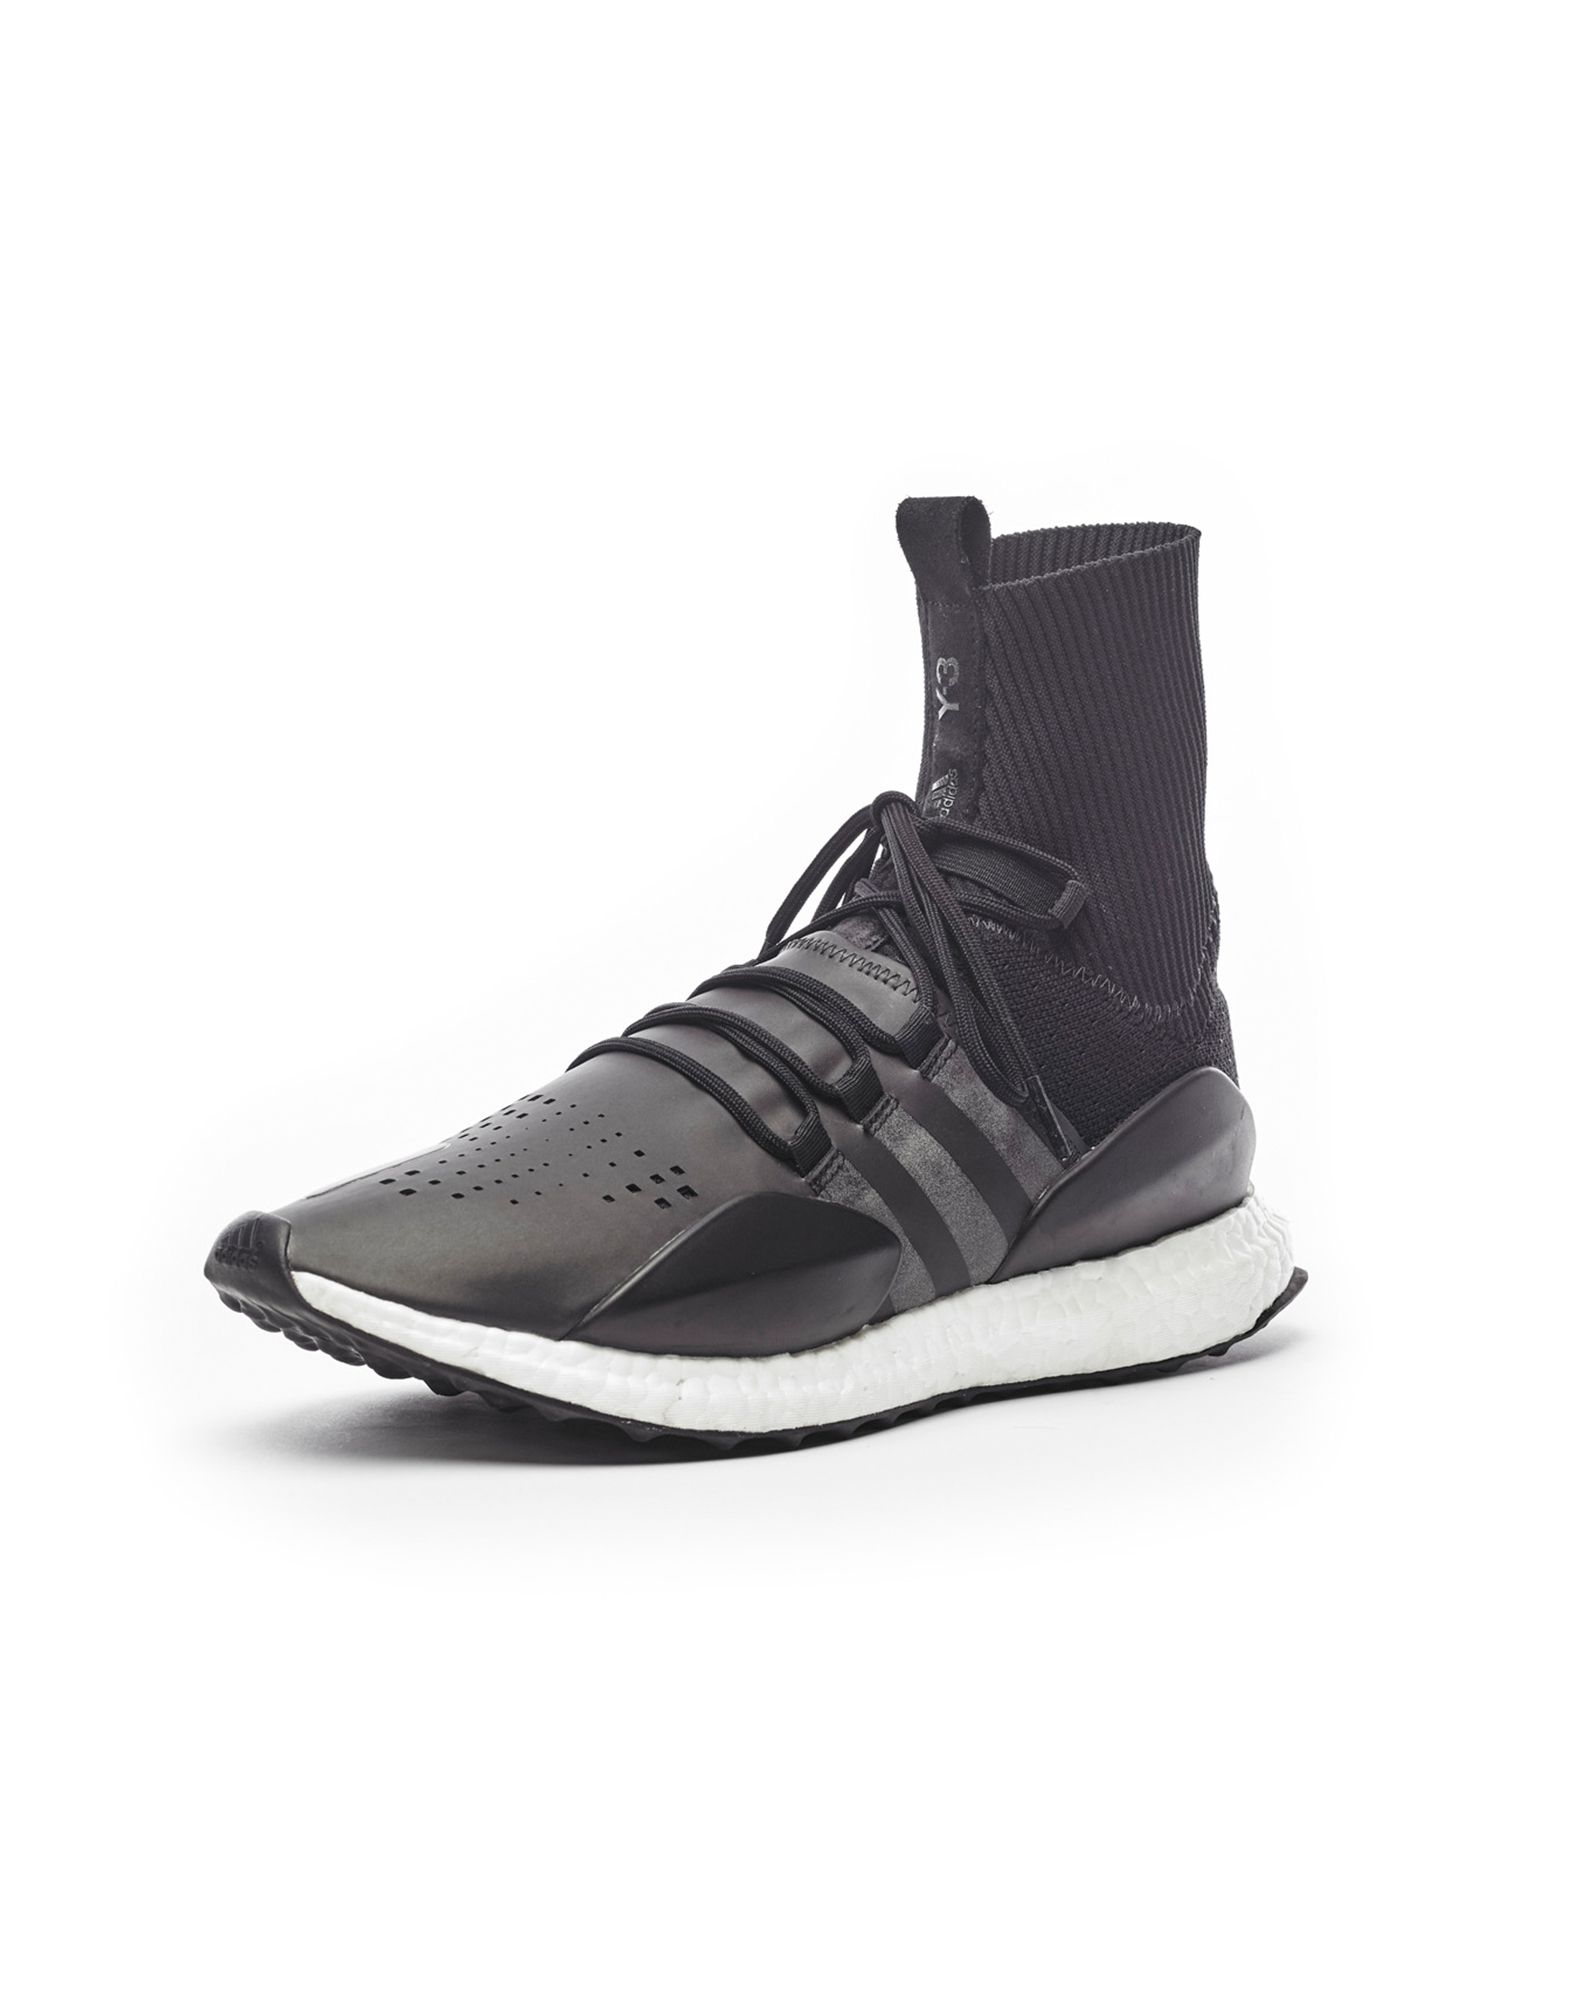 ... Y-3 SPORT APPROACH SHOES man Y-3 adidas ...